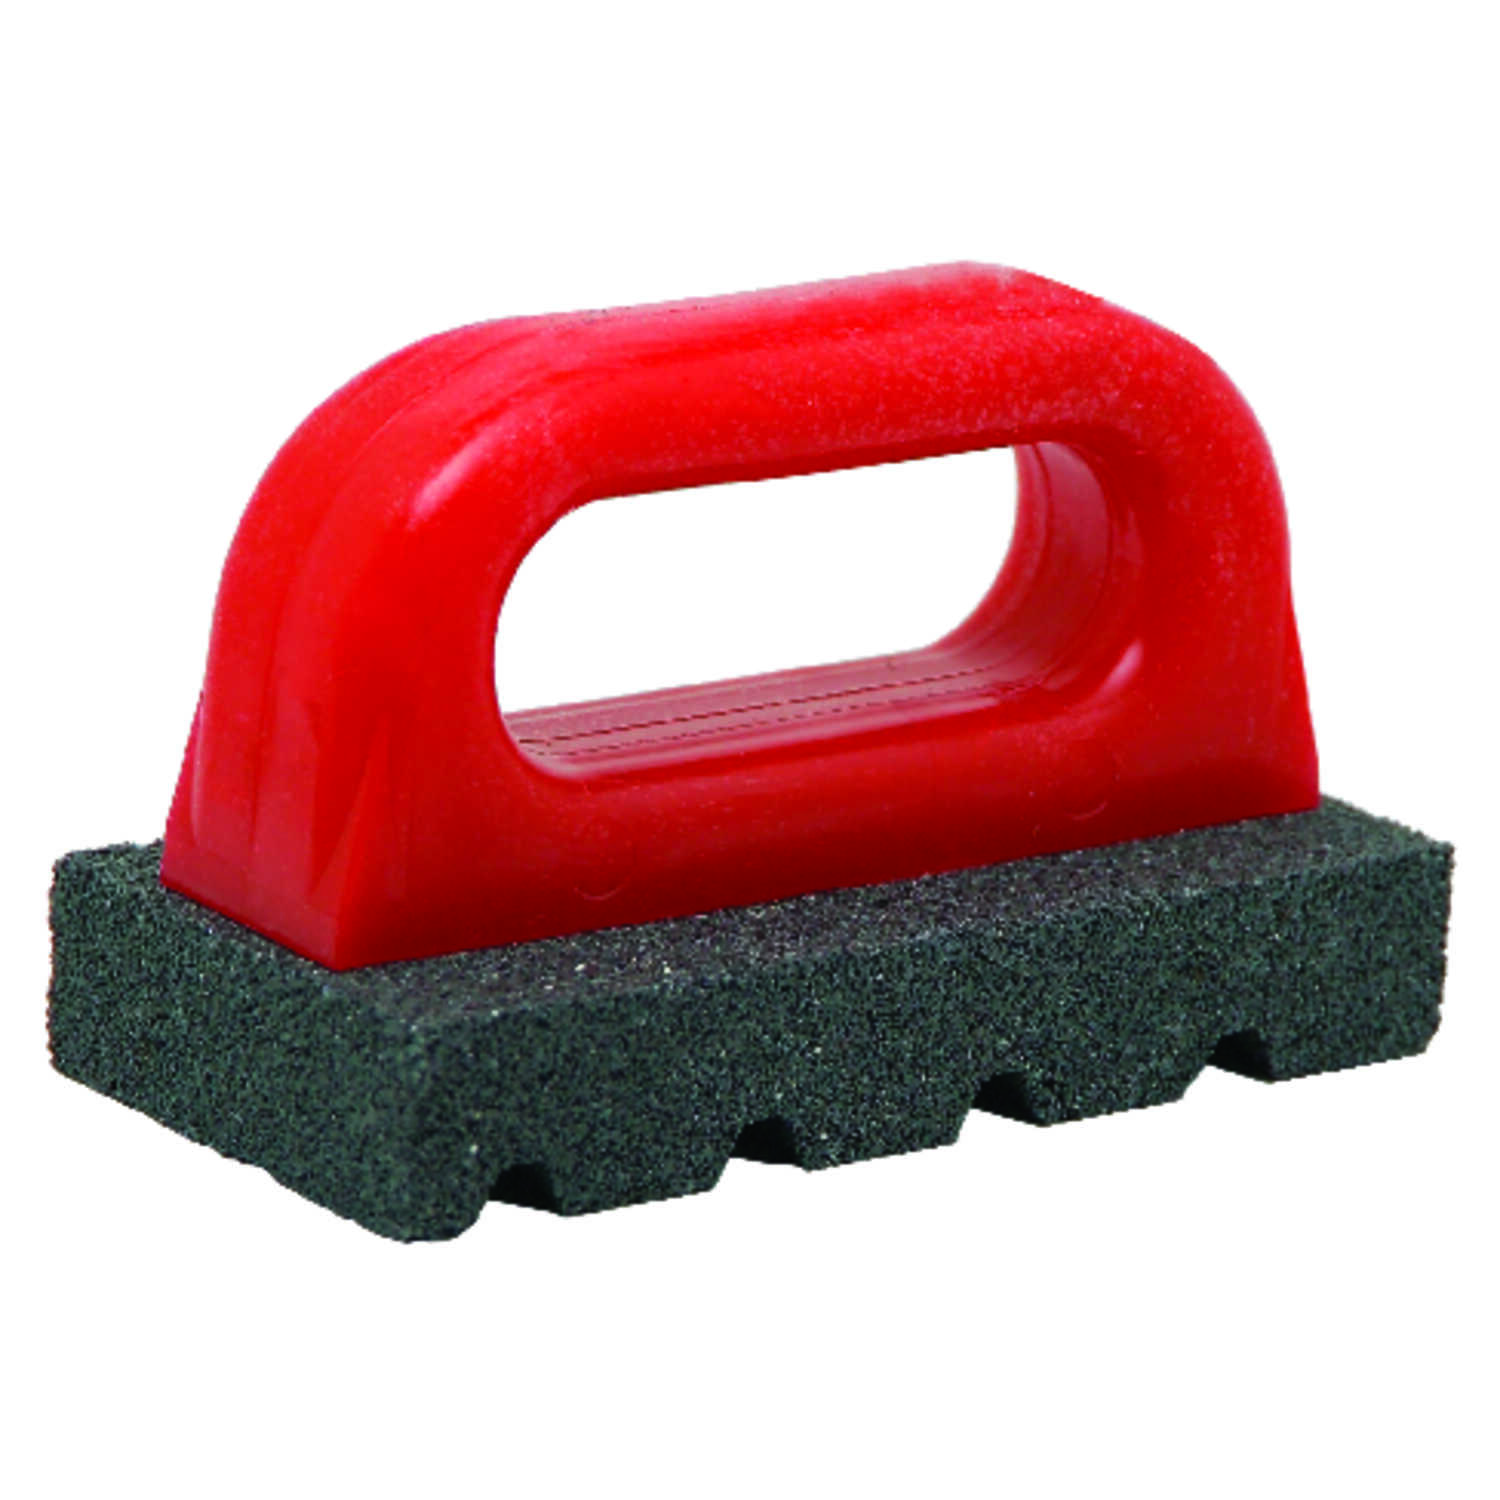 Gator  6 in. L Rubbing Brick  Silicon Carbide  1 pc.